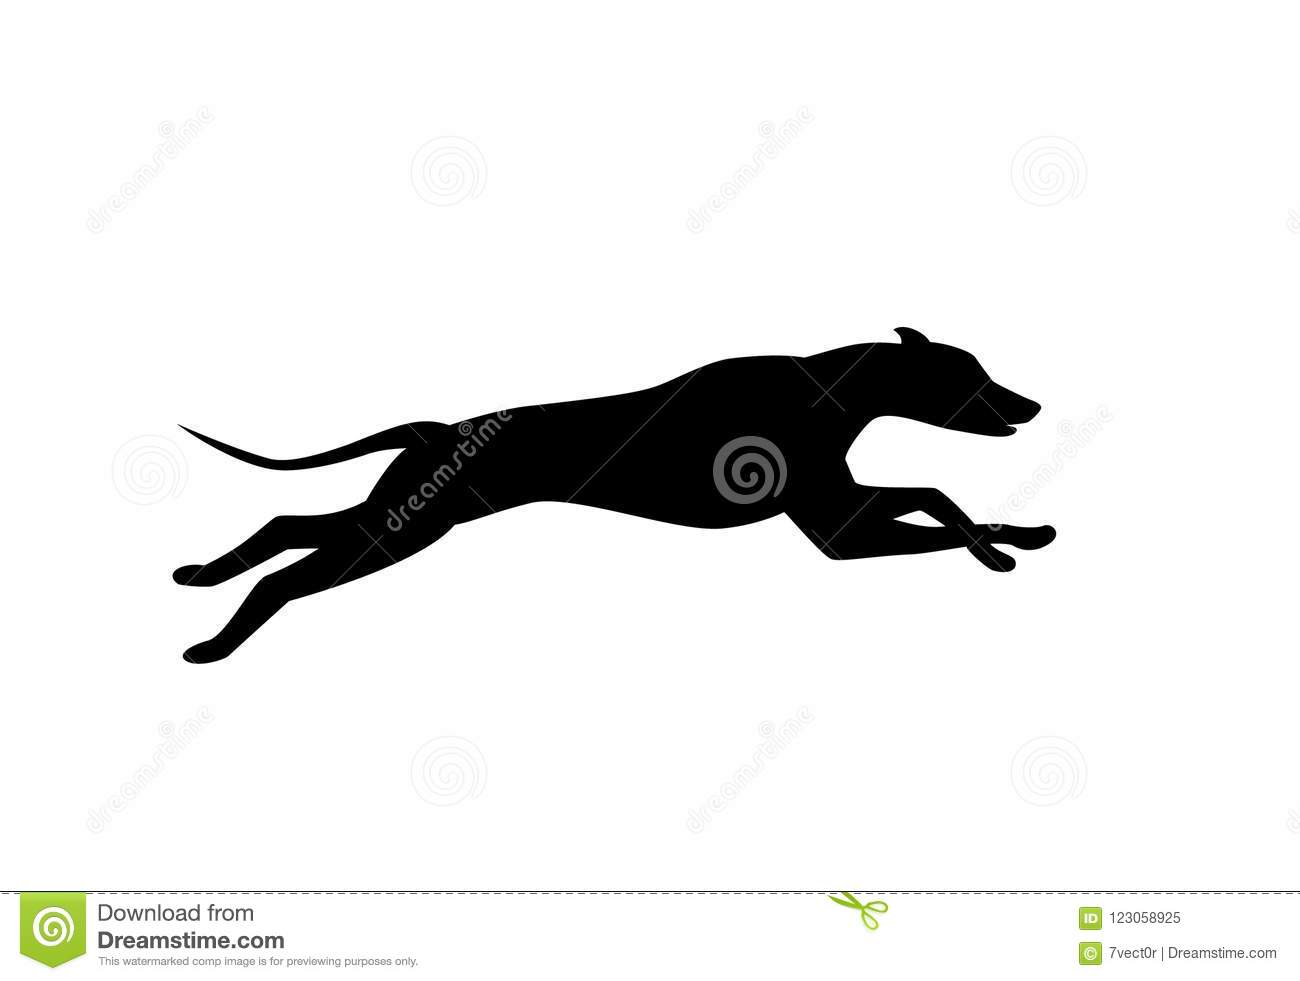 Running dog silhouette in black color